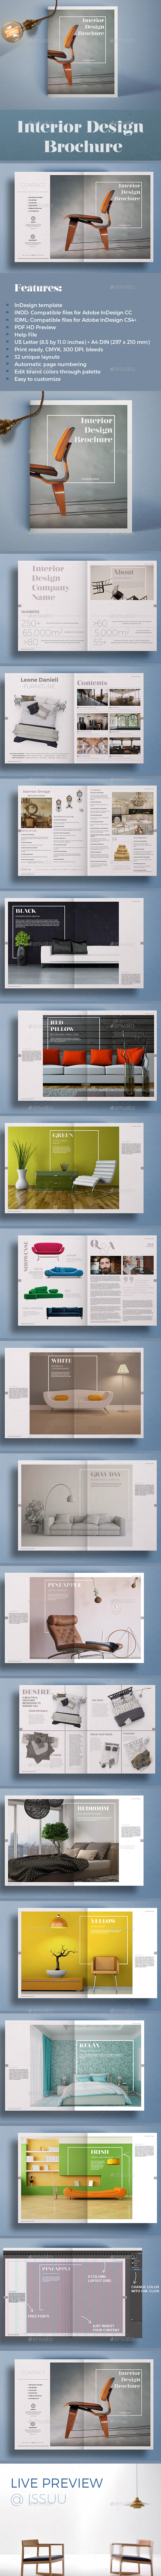 Interior Design Brochure - Catalogs Brochures